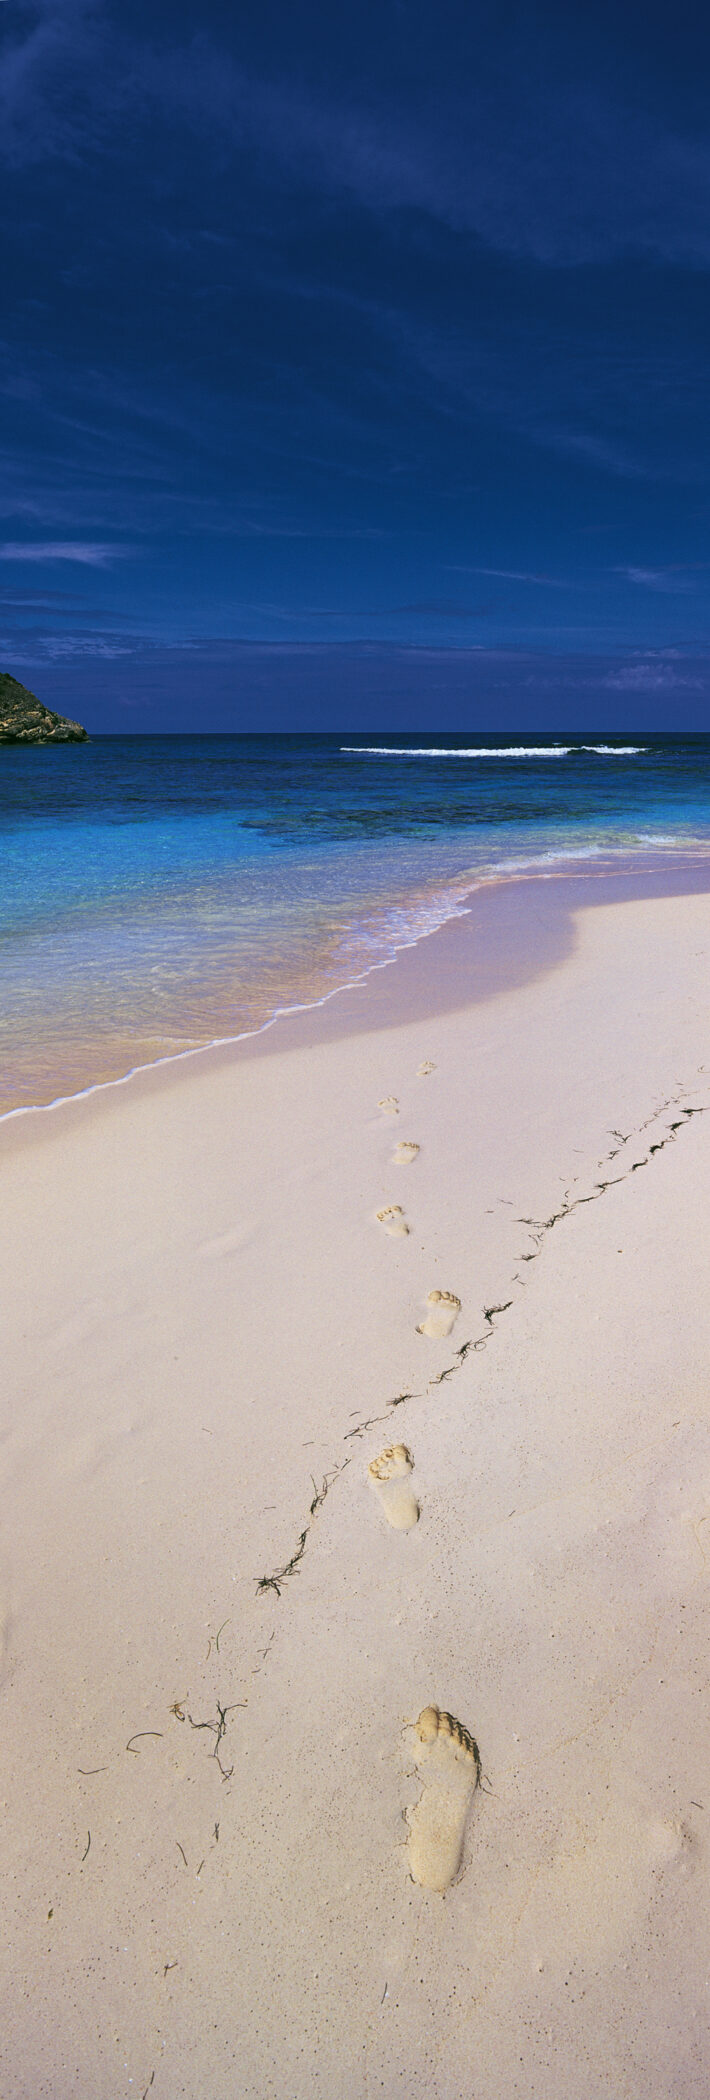 G31 - Footprints in the Sand, Antigua